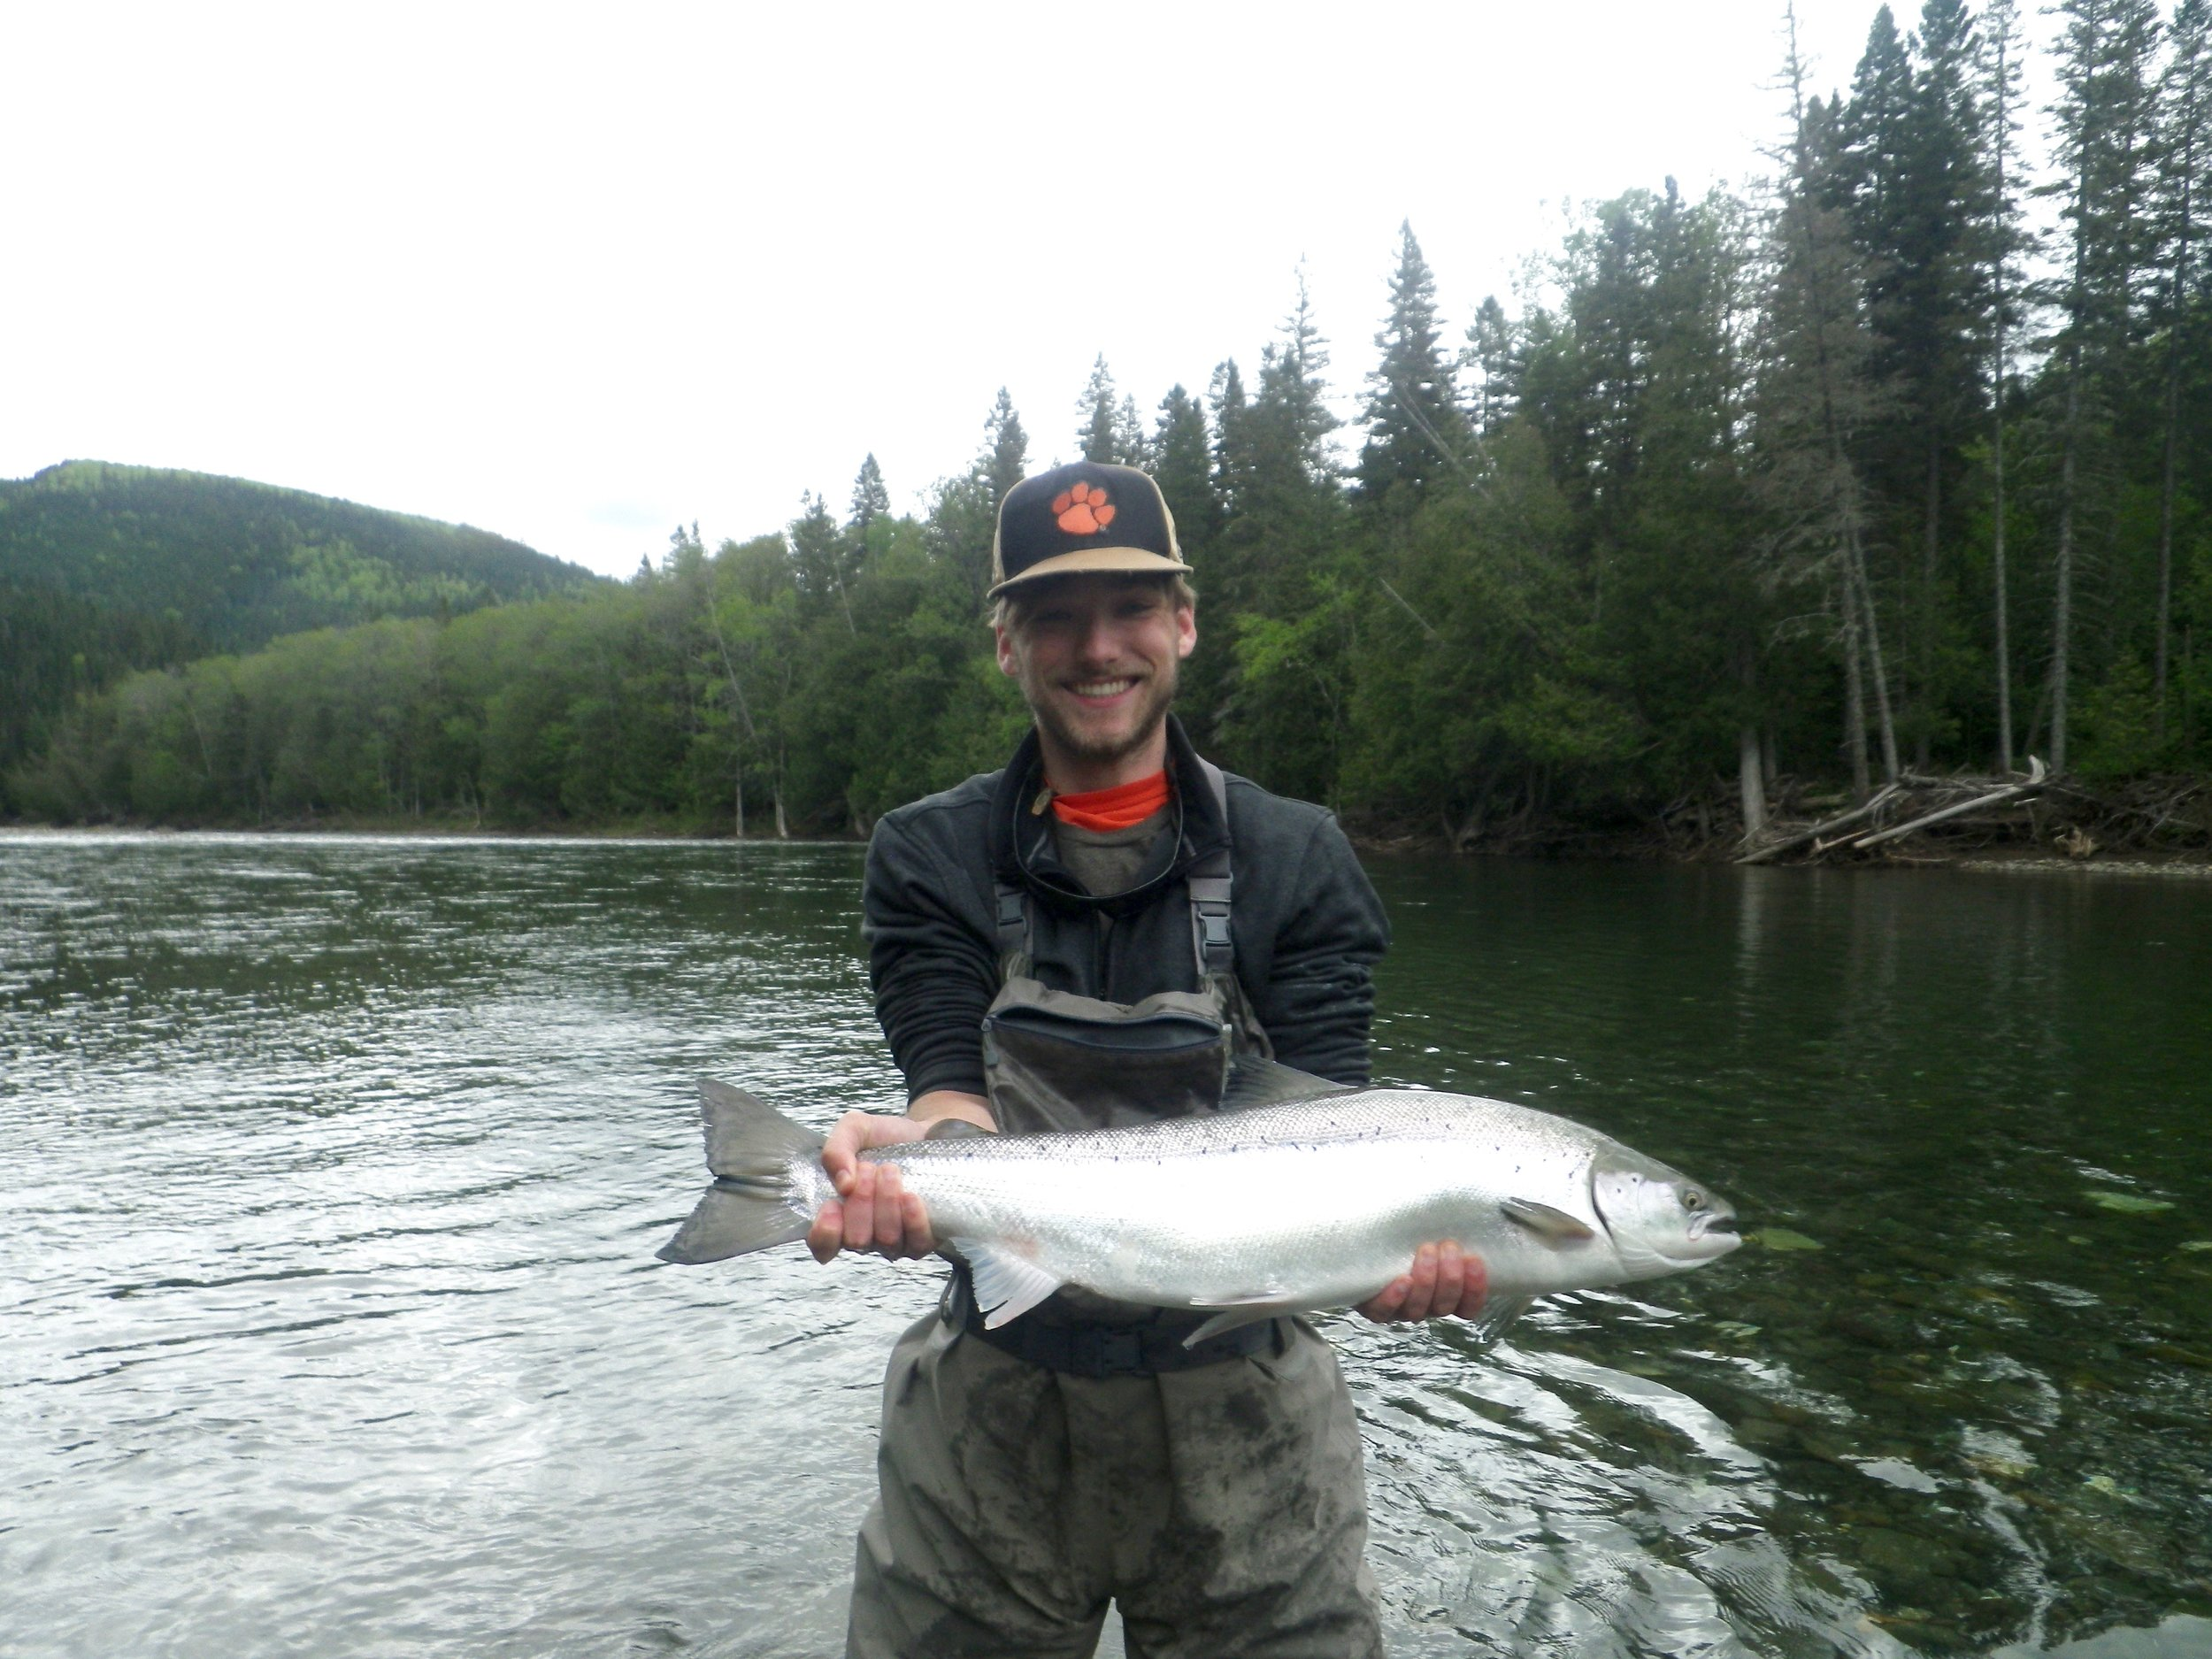 Ward Sprouse fromSouth Carolina with his first Atlantic salmon, congratulations Ward, may this be the first of many!